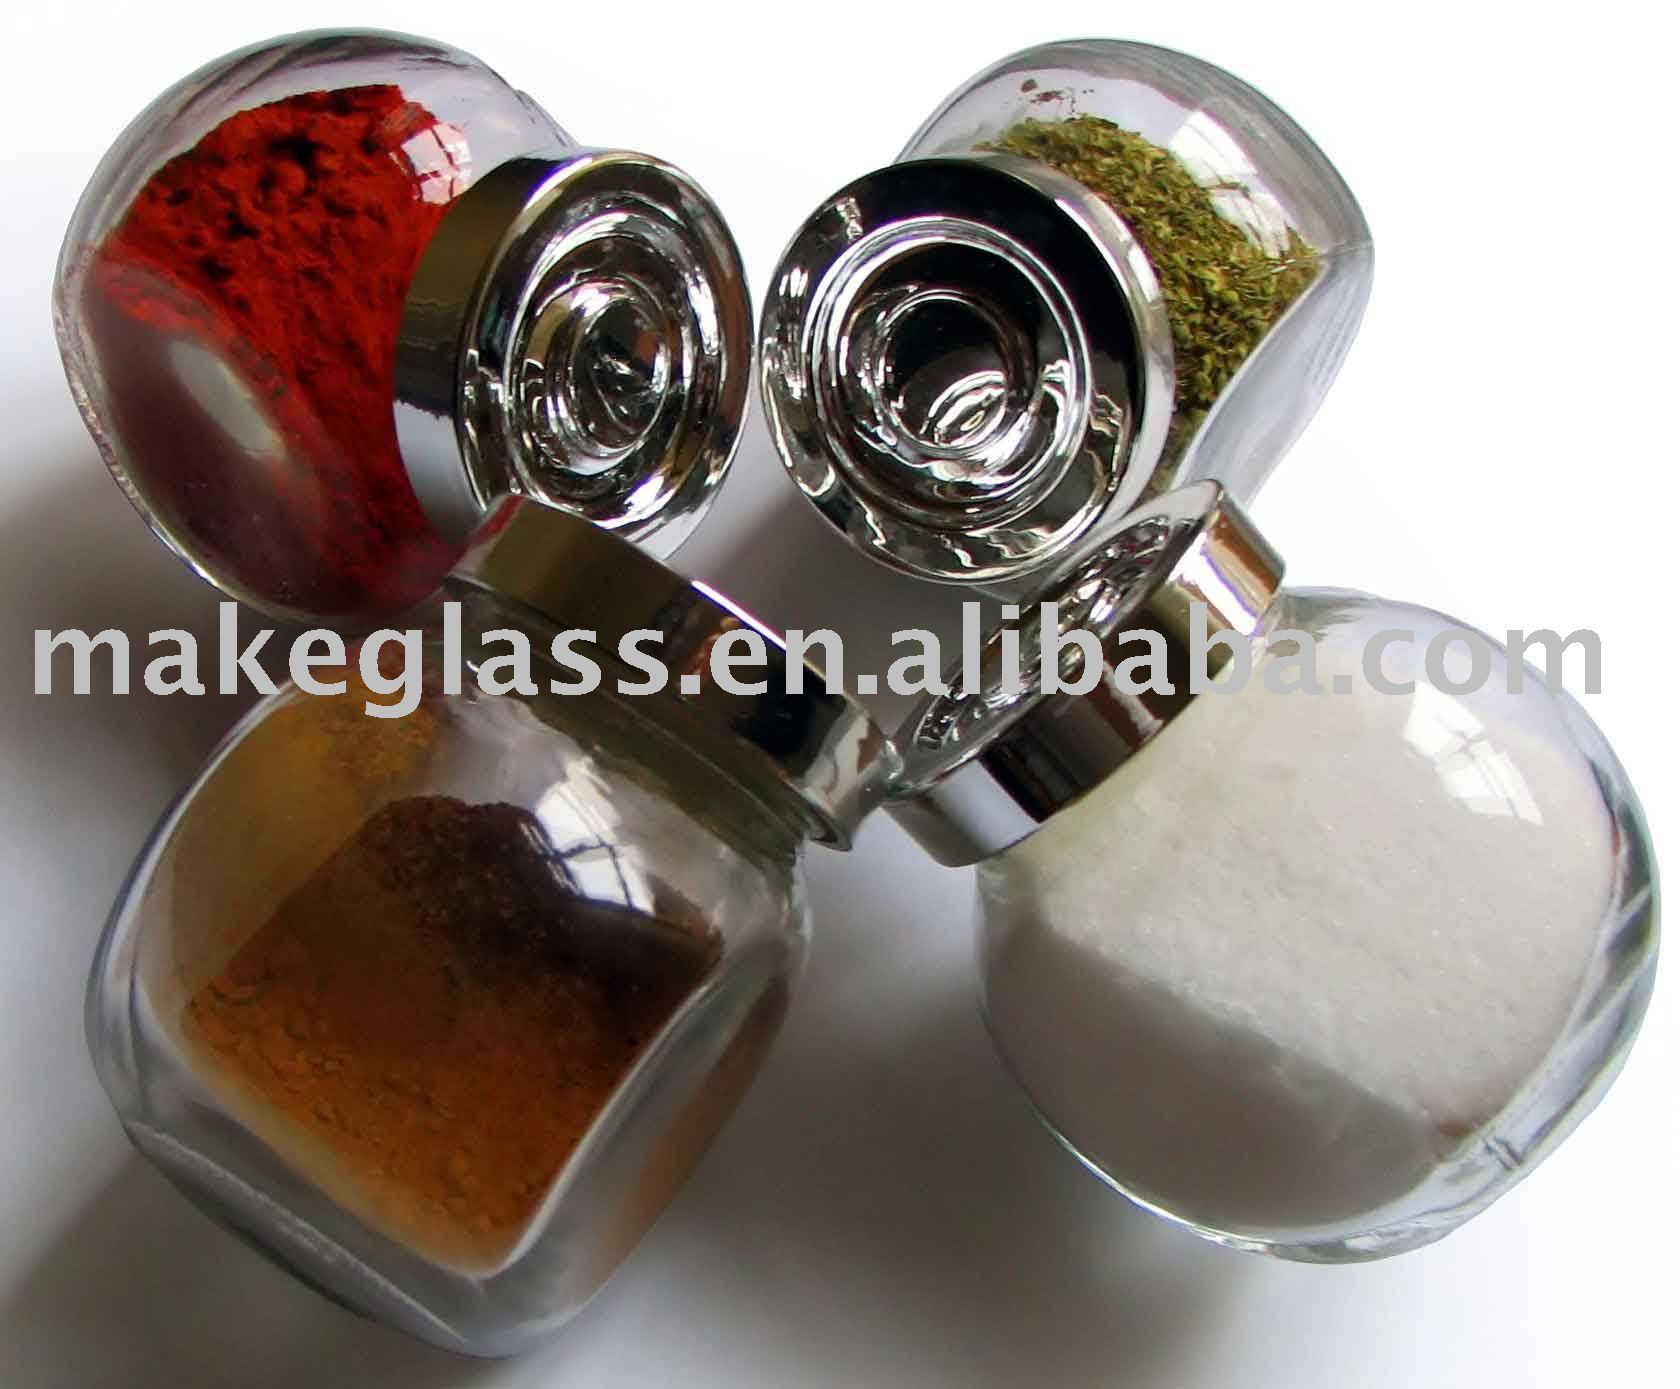 mini glass spice bottle with iron stand/glassware